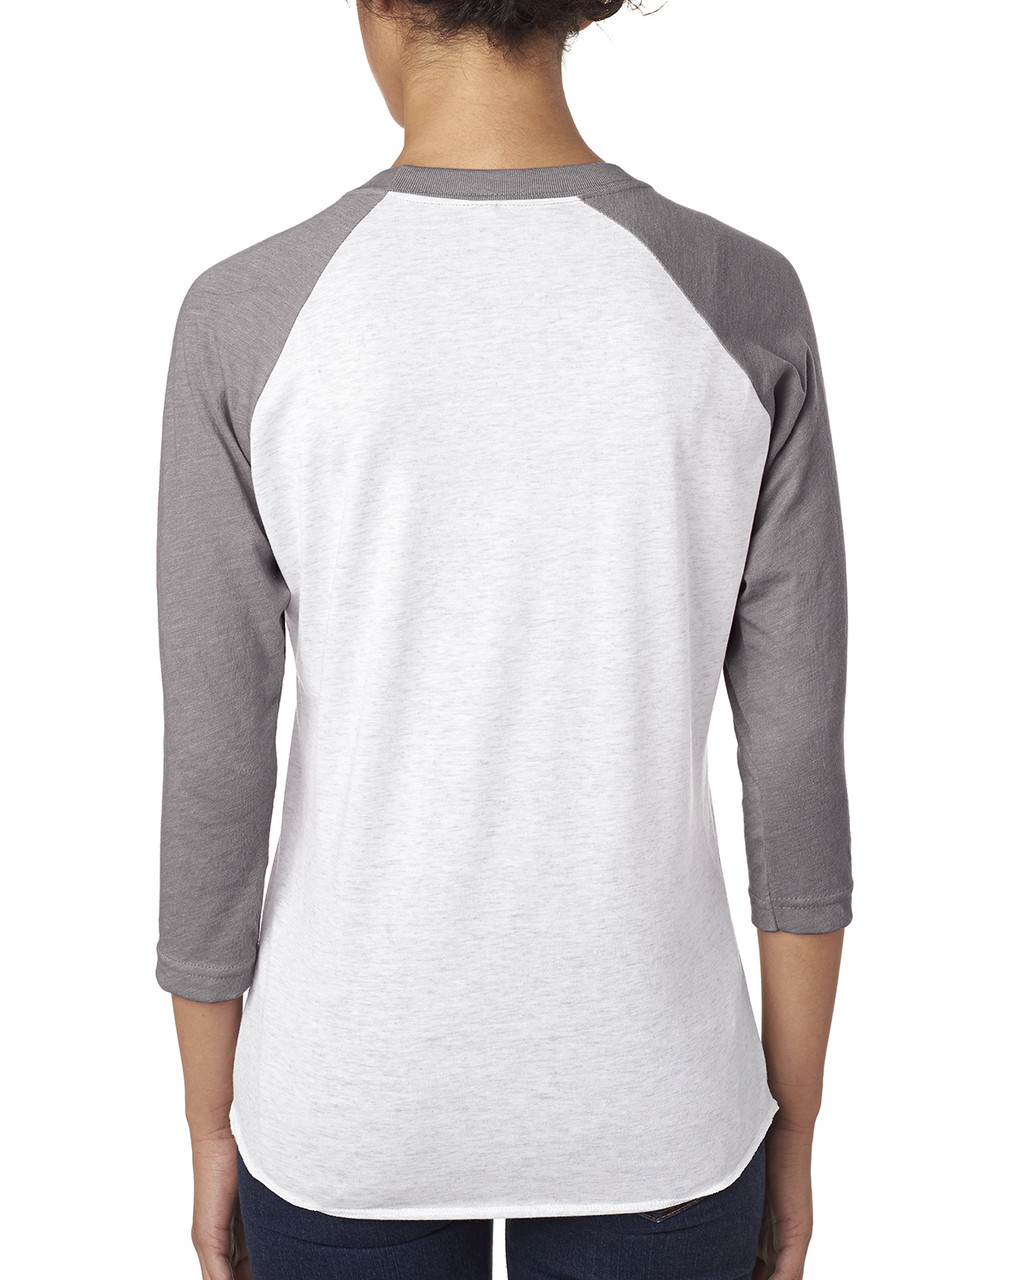 Heather/Heather White - back 6051 Next Level Unisex Tri-Blend 3/4-Sleeve Raglan Tee | Blankclothing.ca